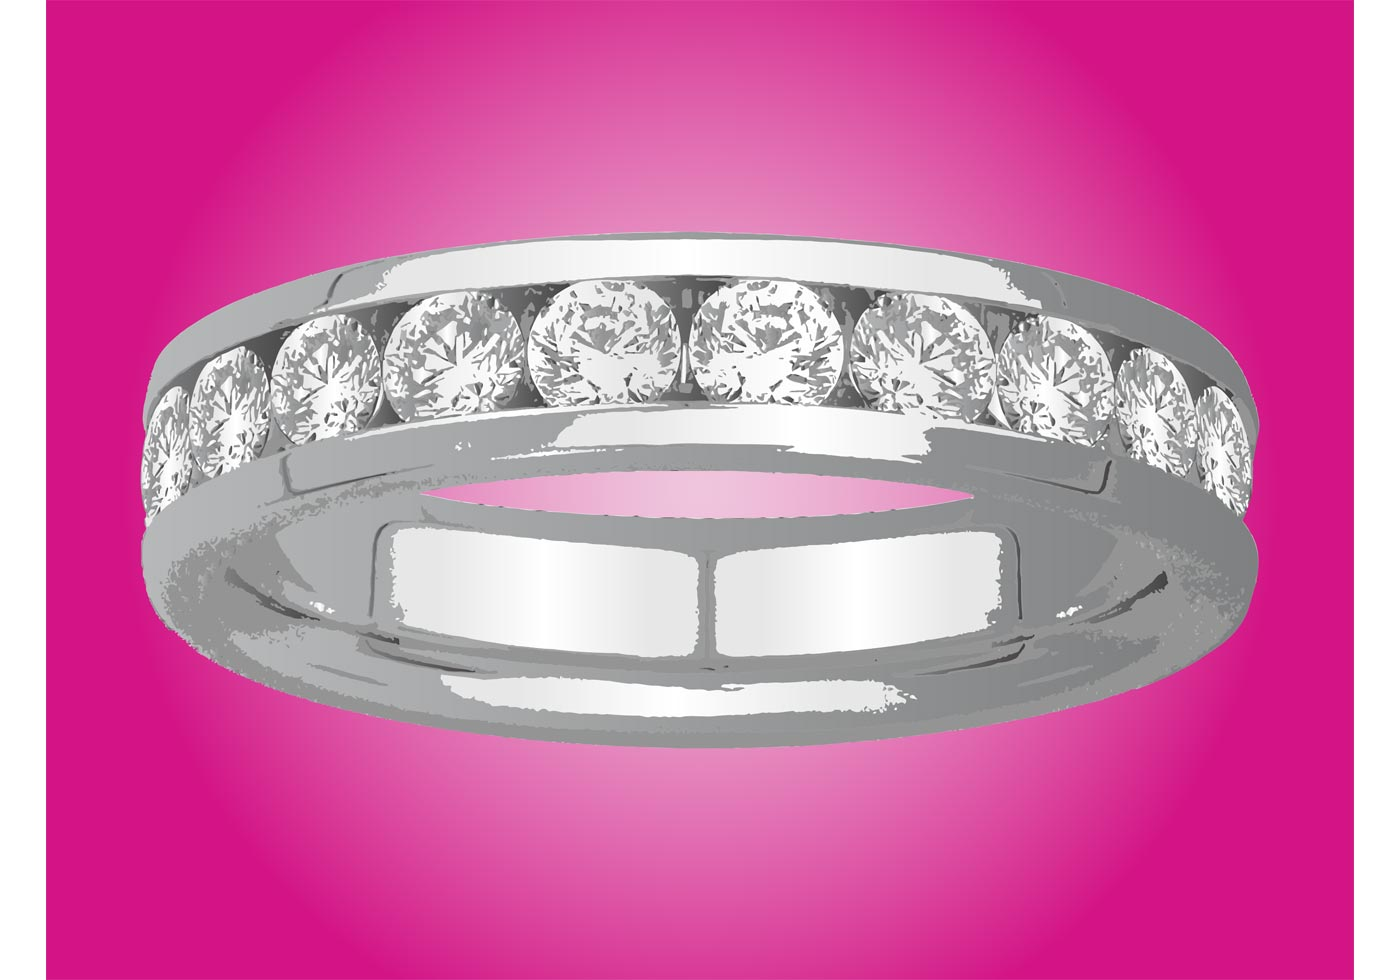 Diamond Ring - Download Free Vector Art, Stock Graphics & Images